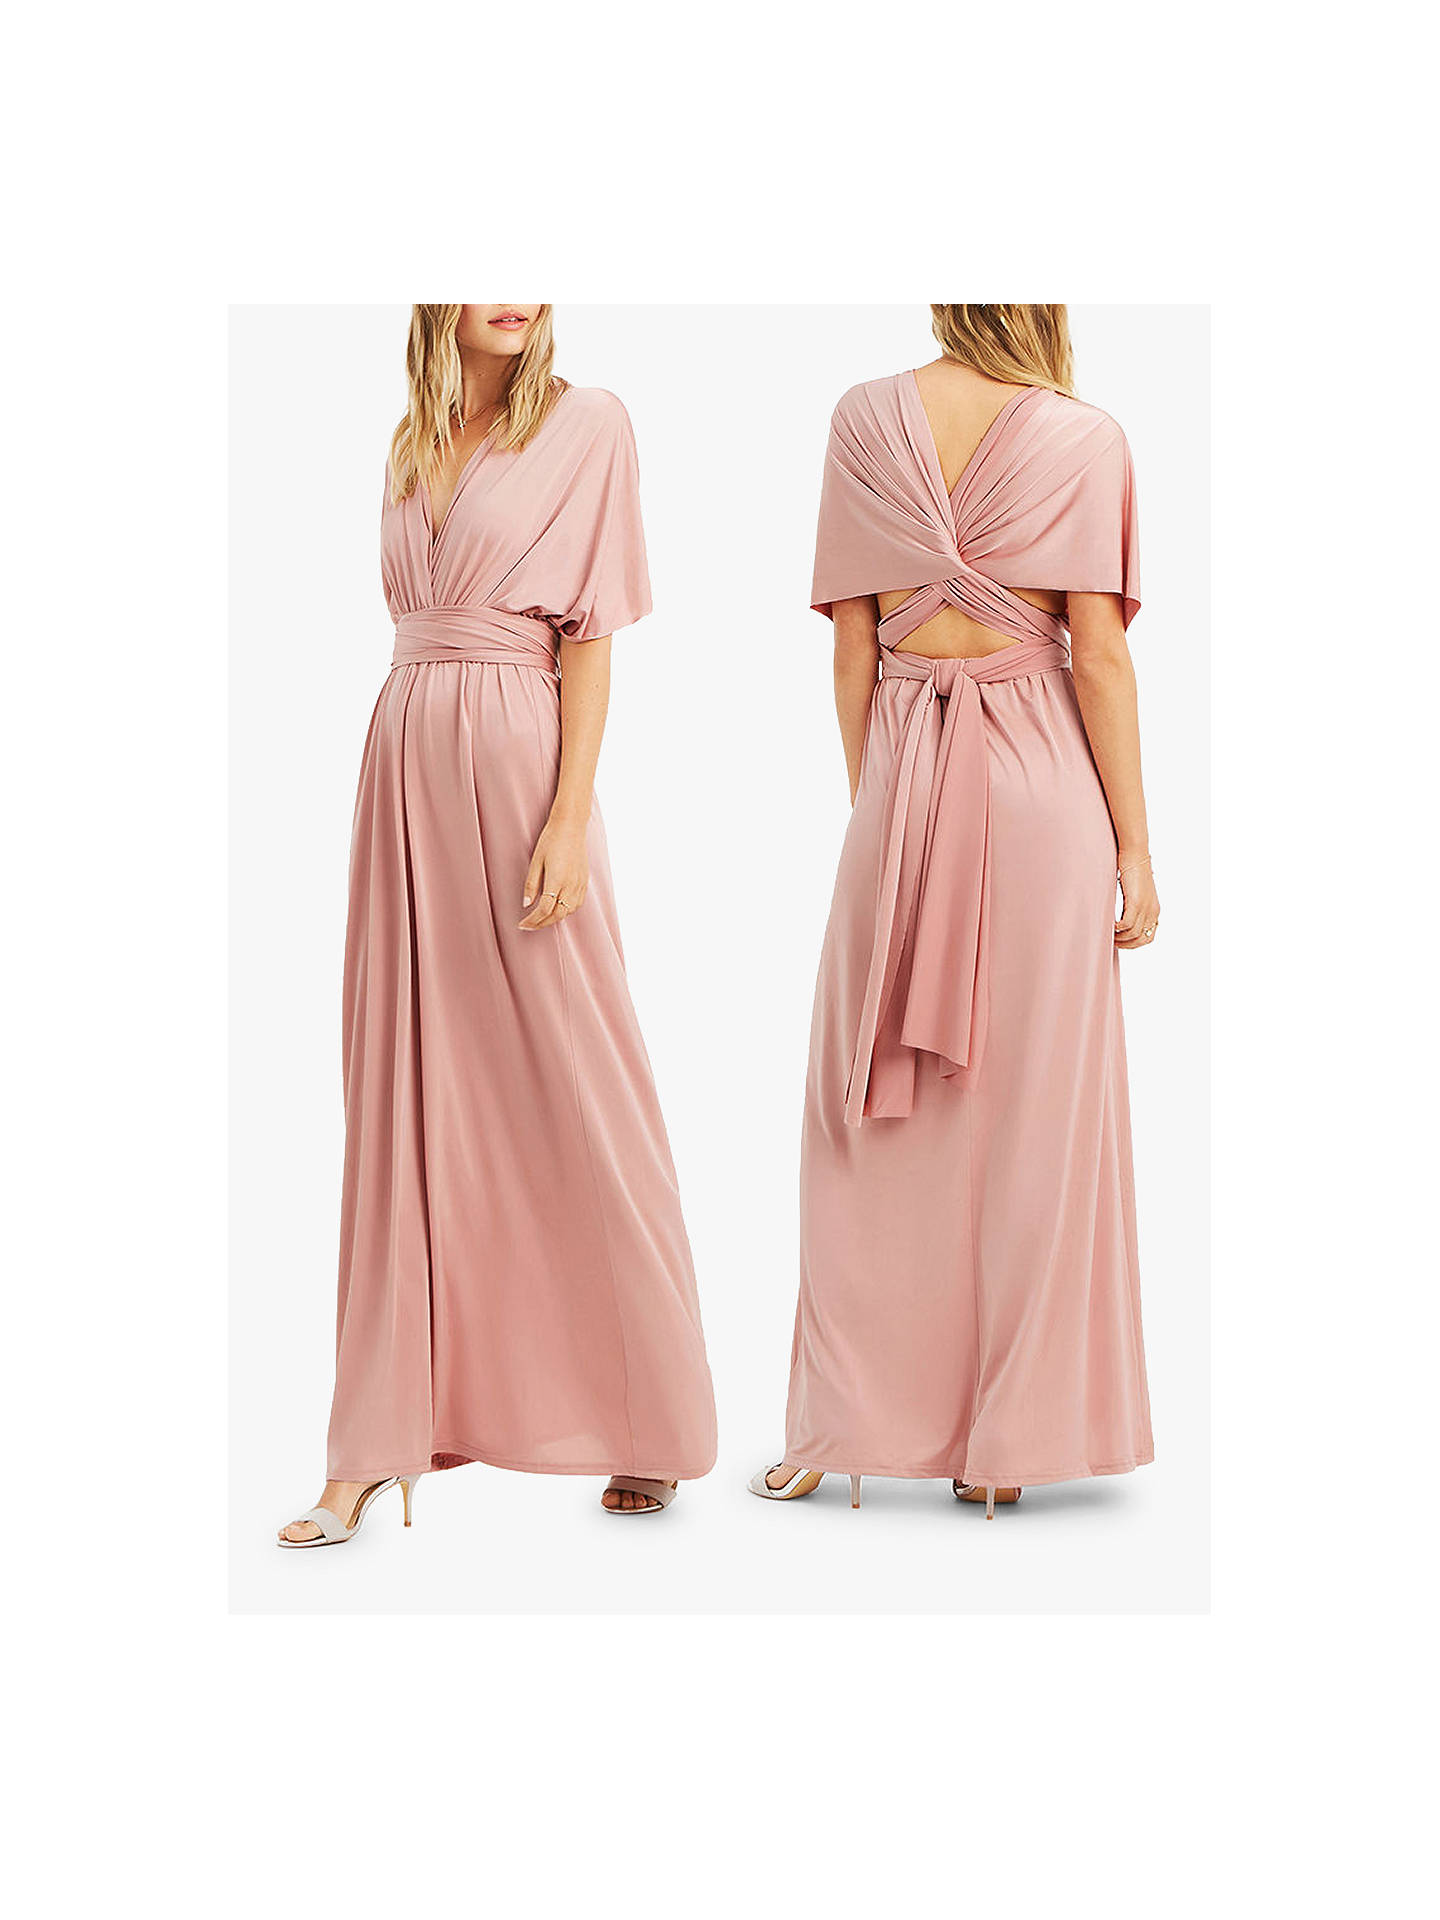 2bc23270e0c3 ... Buy Oasis Annie Multiway Maxi Dress, Mid Pink, M Online at  johnlewis.com ...